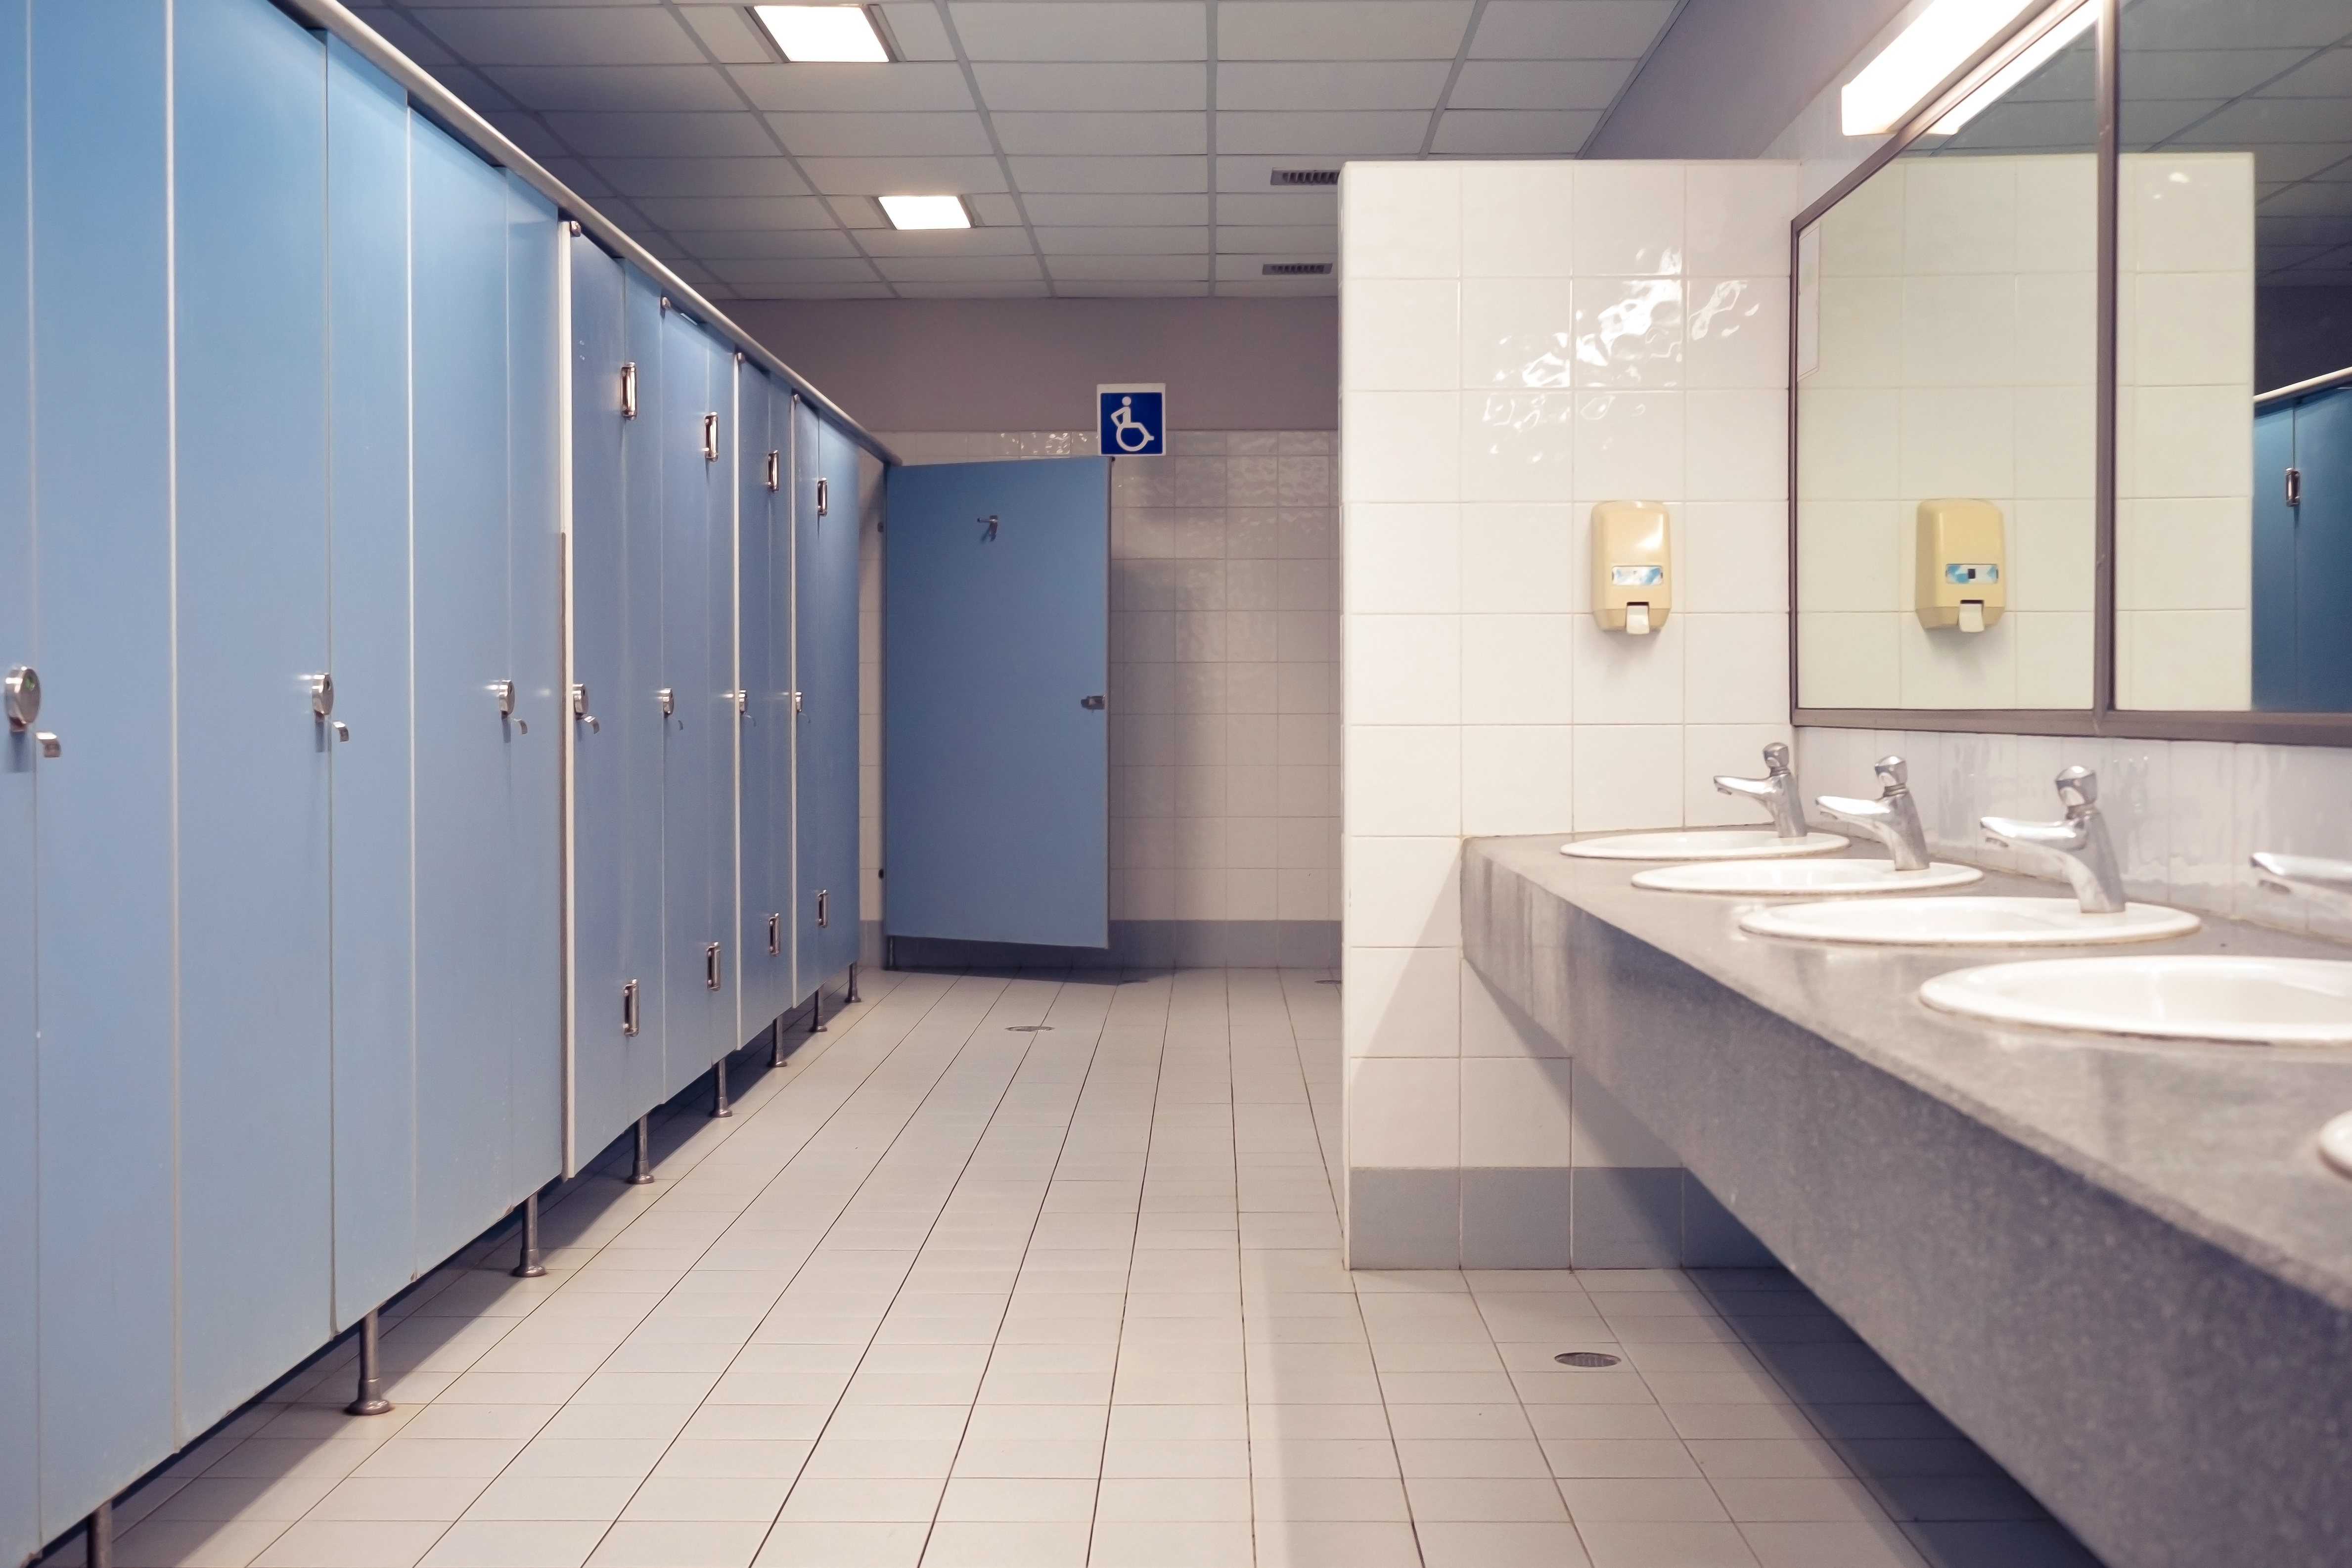 Tips for Using Public Bathrooms During the Coronavirus Pandemic